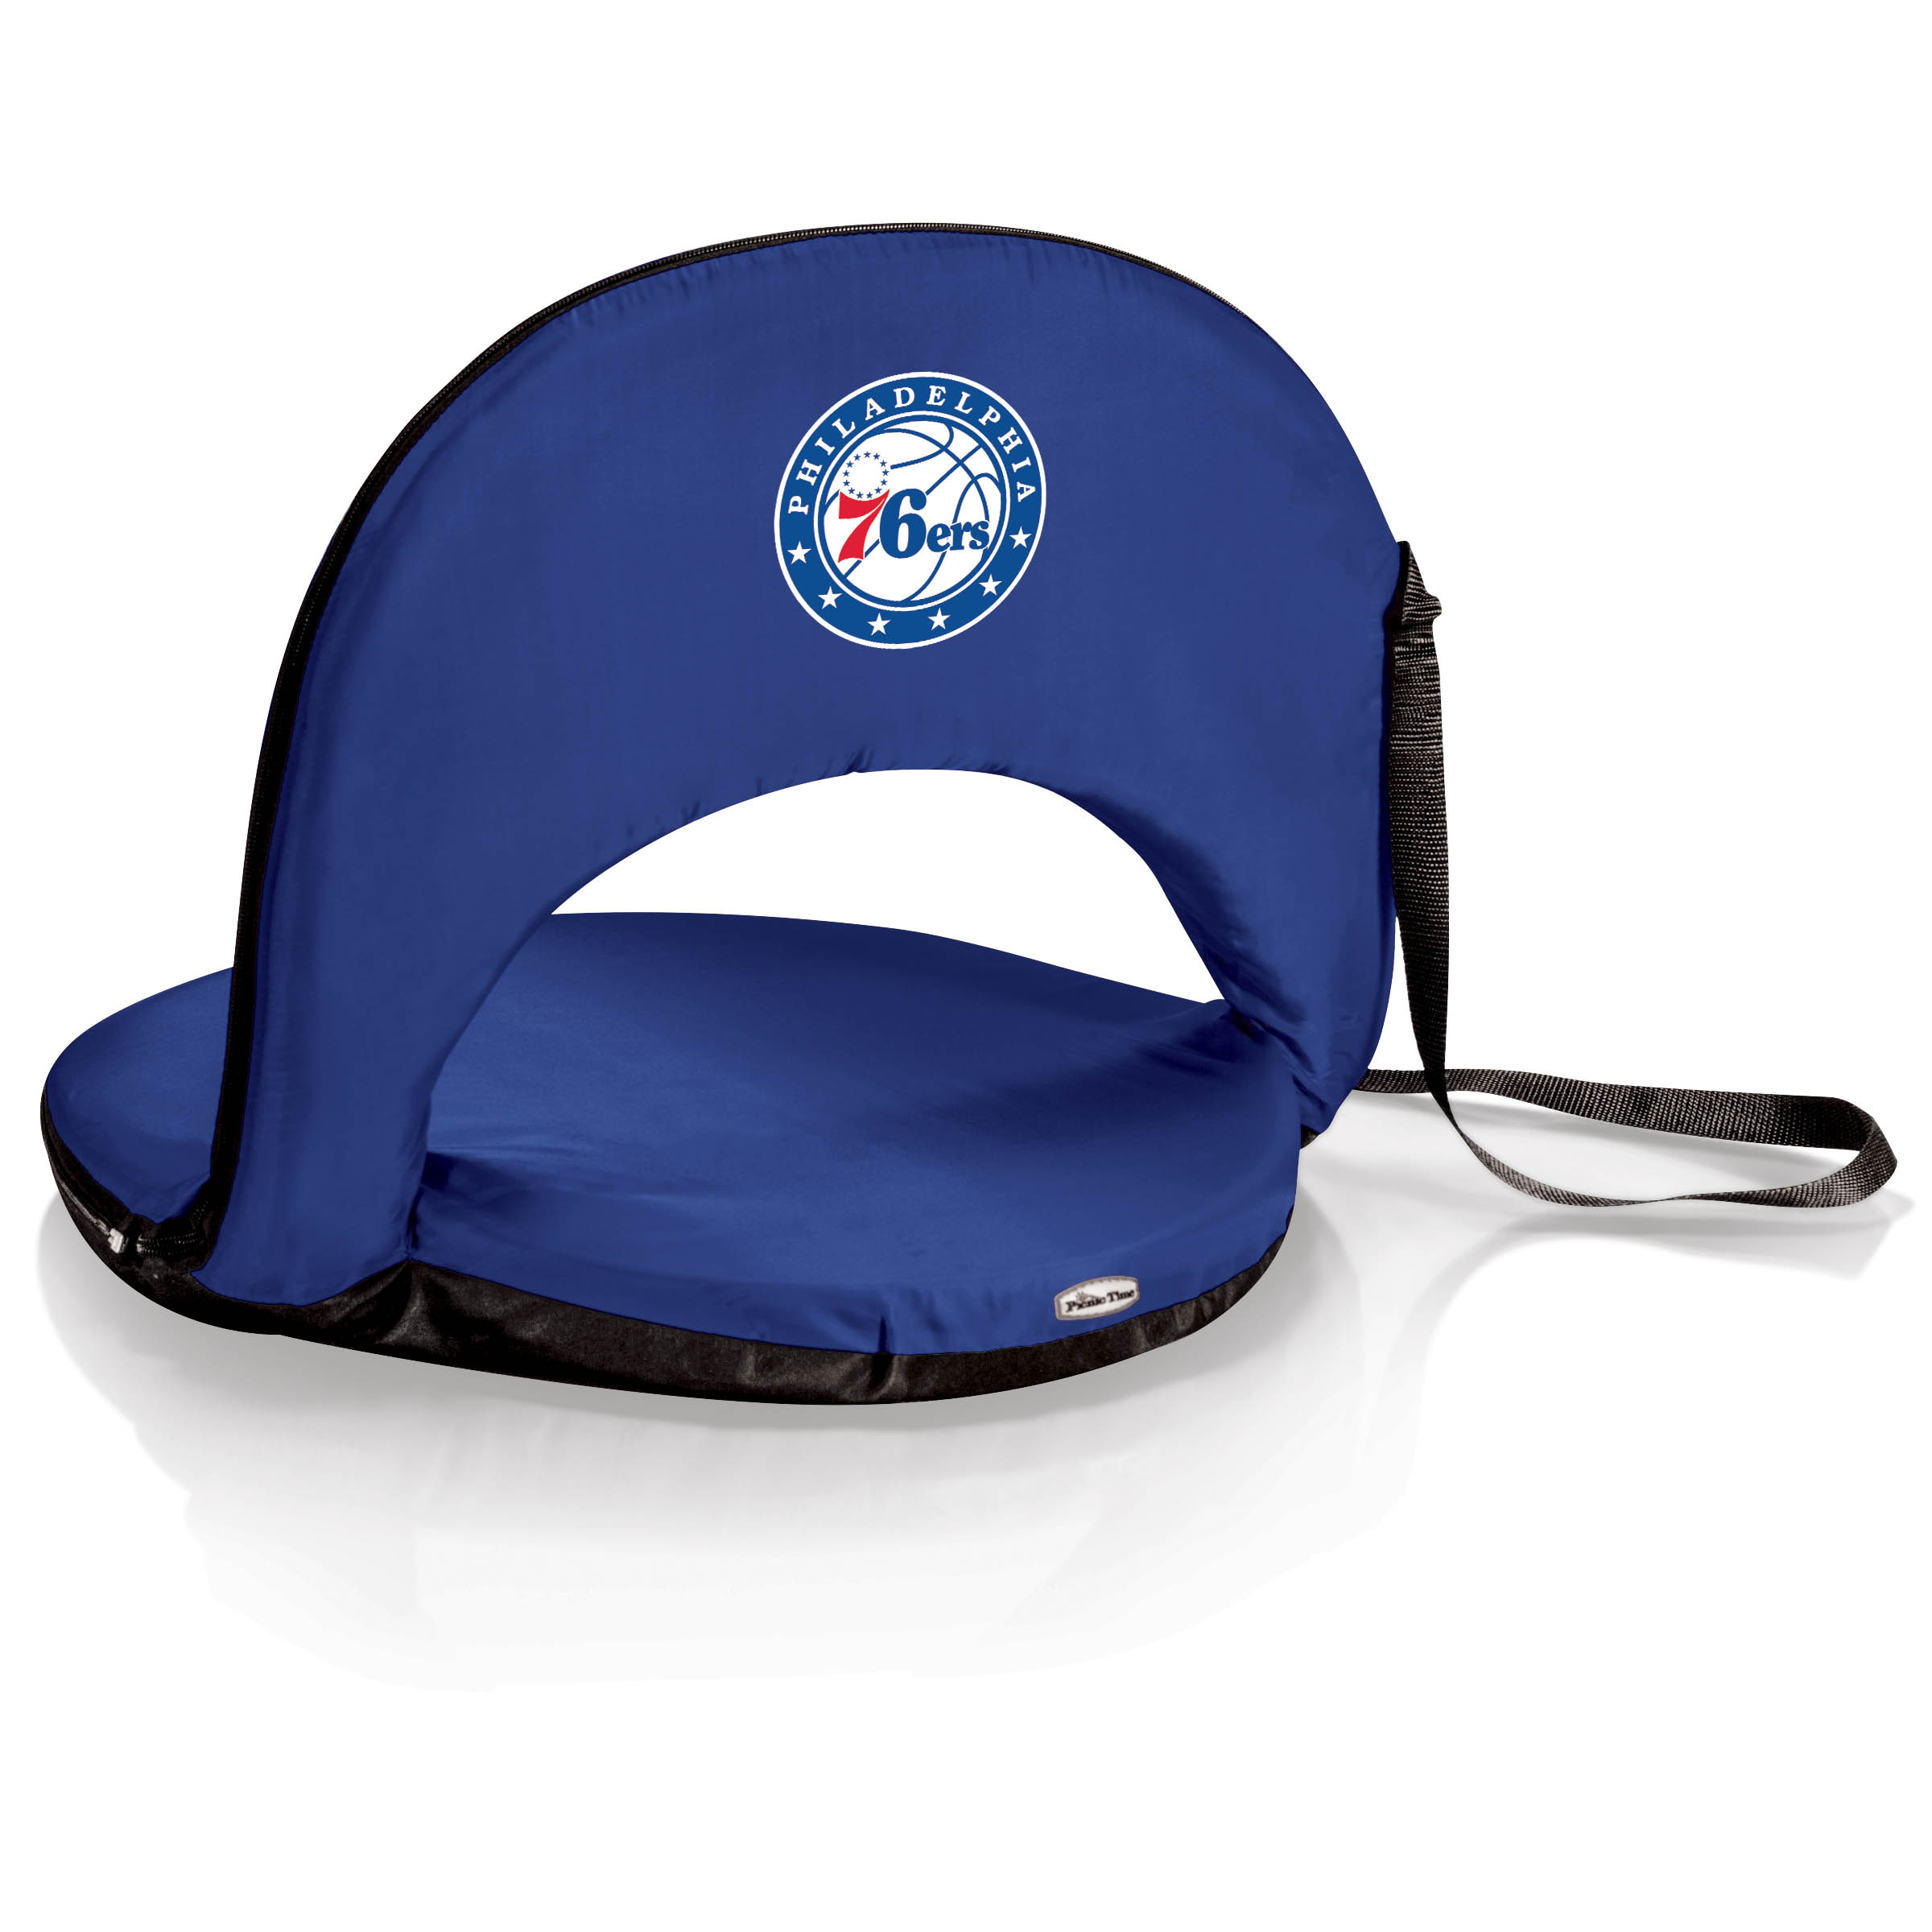 Philadelphia 76ers Navy Oniva Seat Portable Recliner Chair By Picnic Time Wells Fargo Center Official